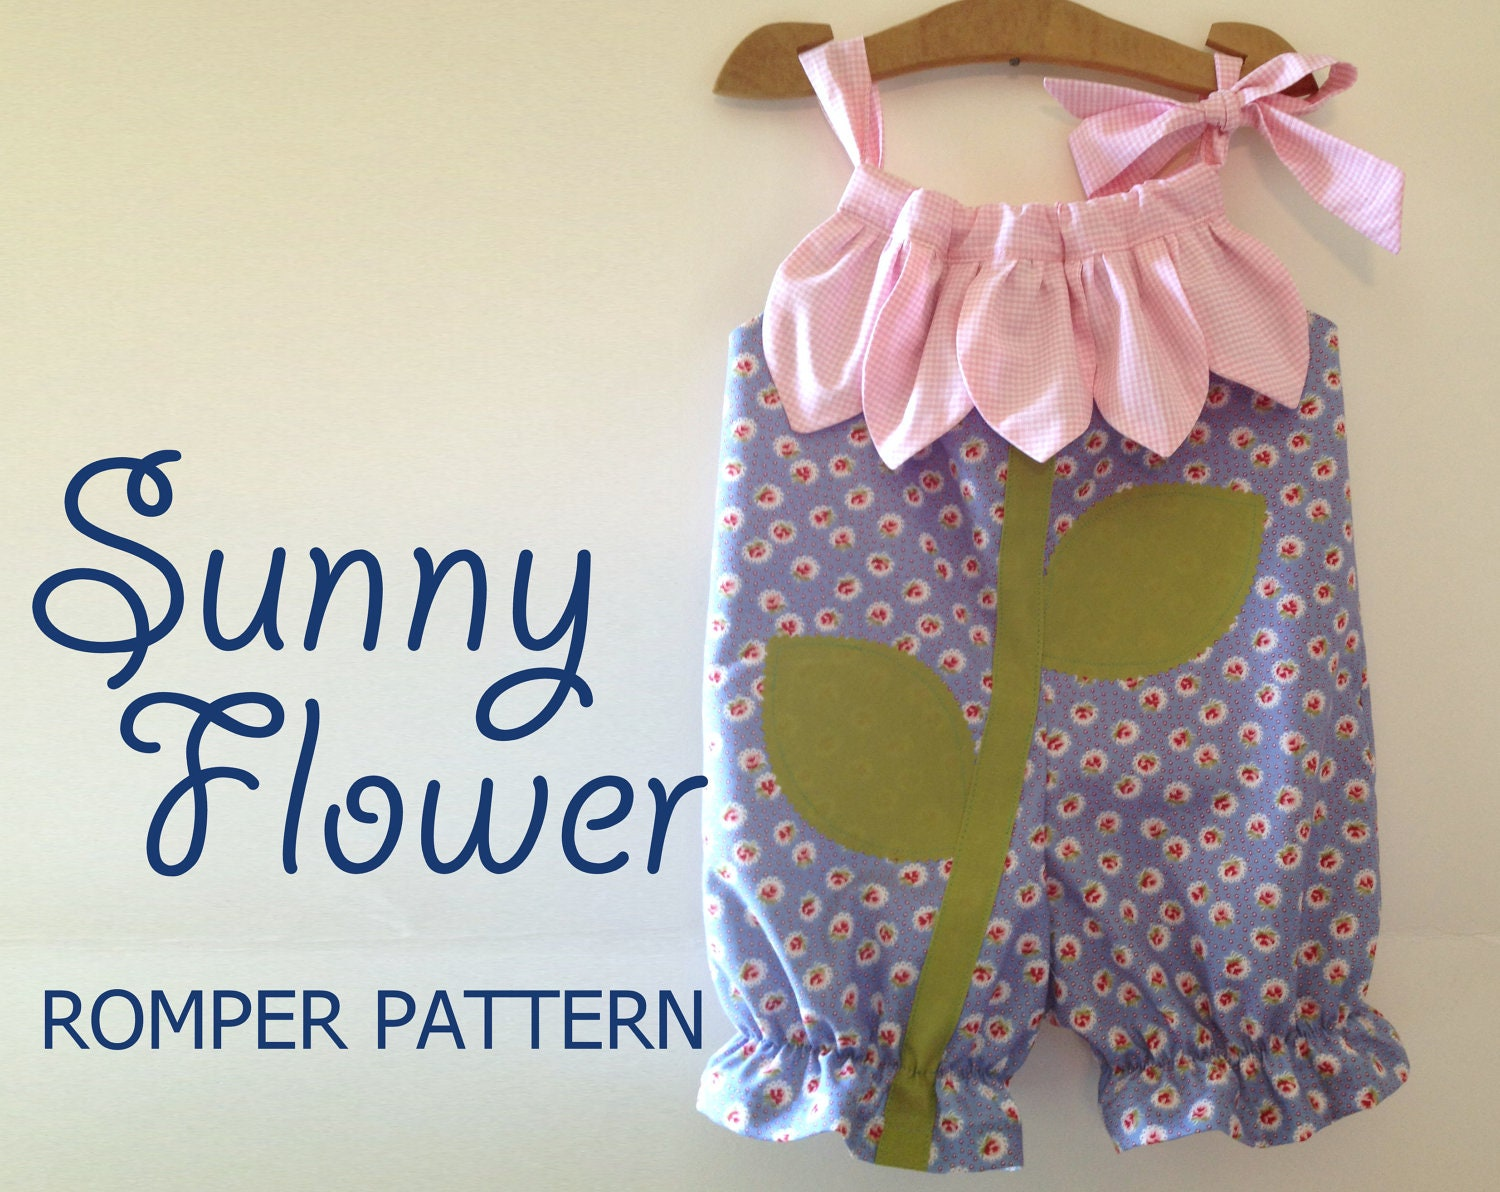 Sunny flower pillowcase romper pattern girl baby toddler sewing this is a digital file jeuxipadfo Choice Image